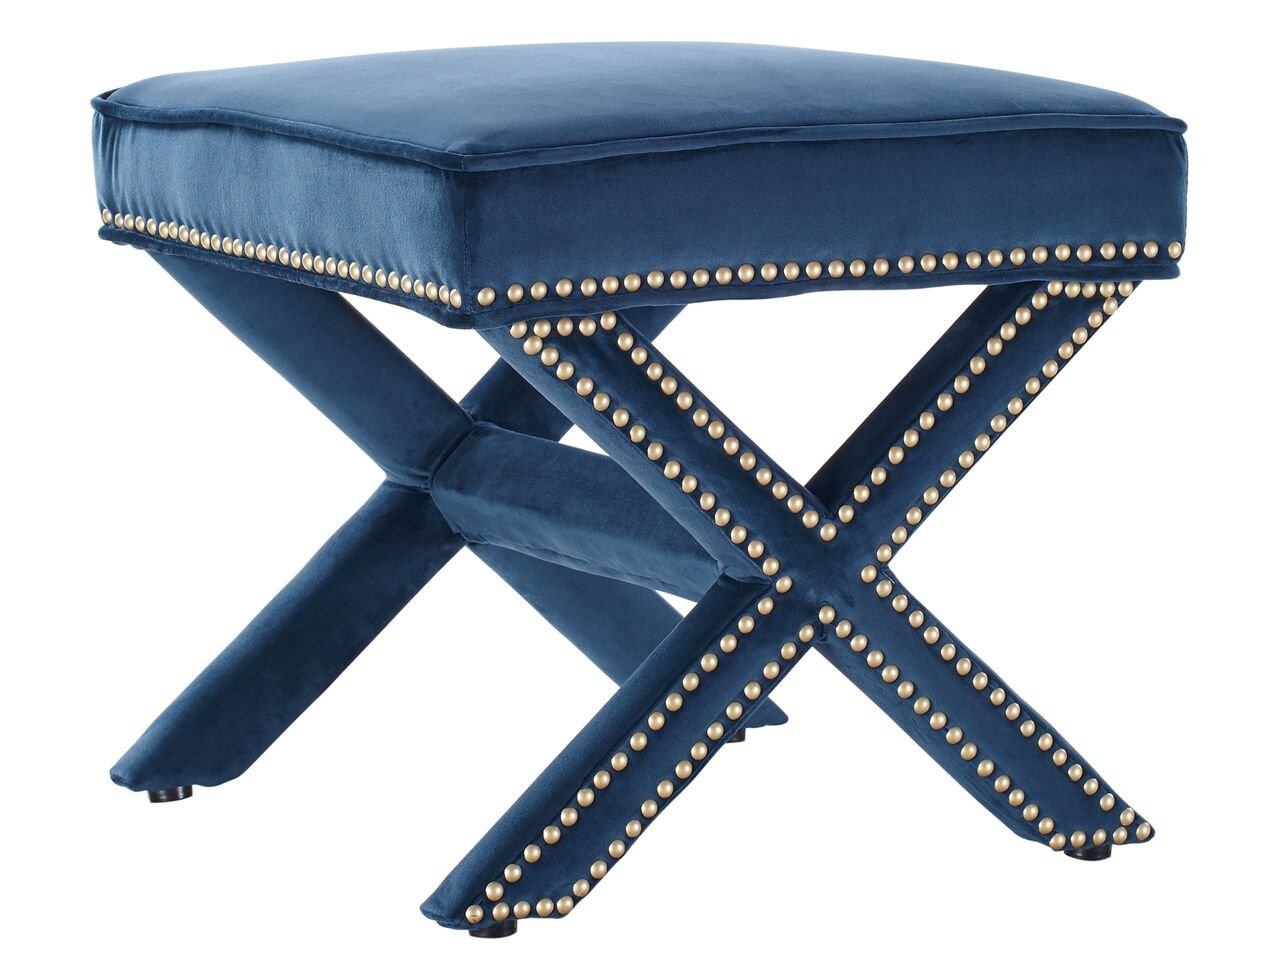 Tov Furniture Reese Velvet Ottoman, Navy